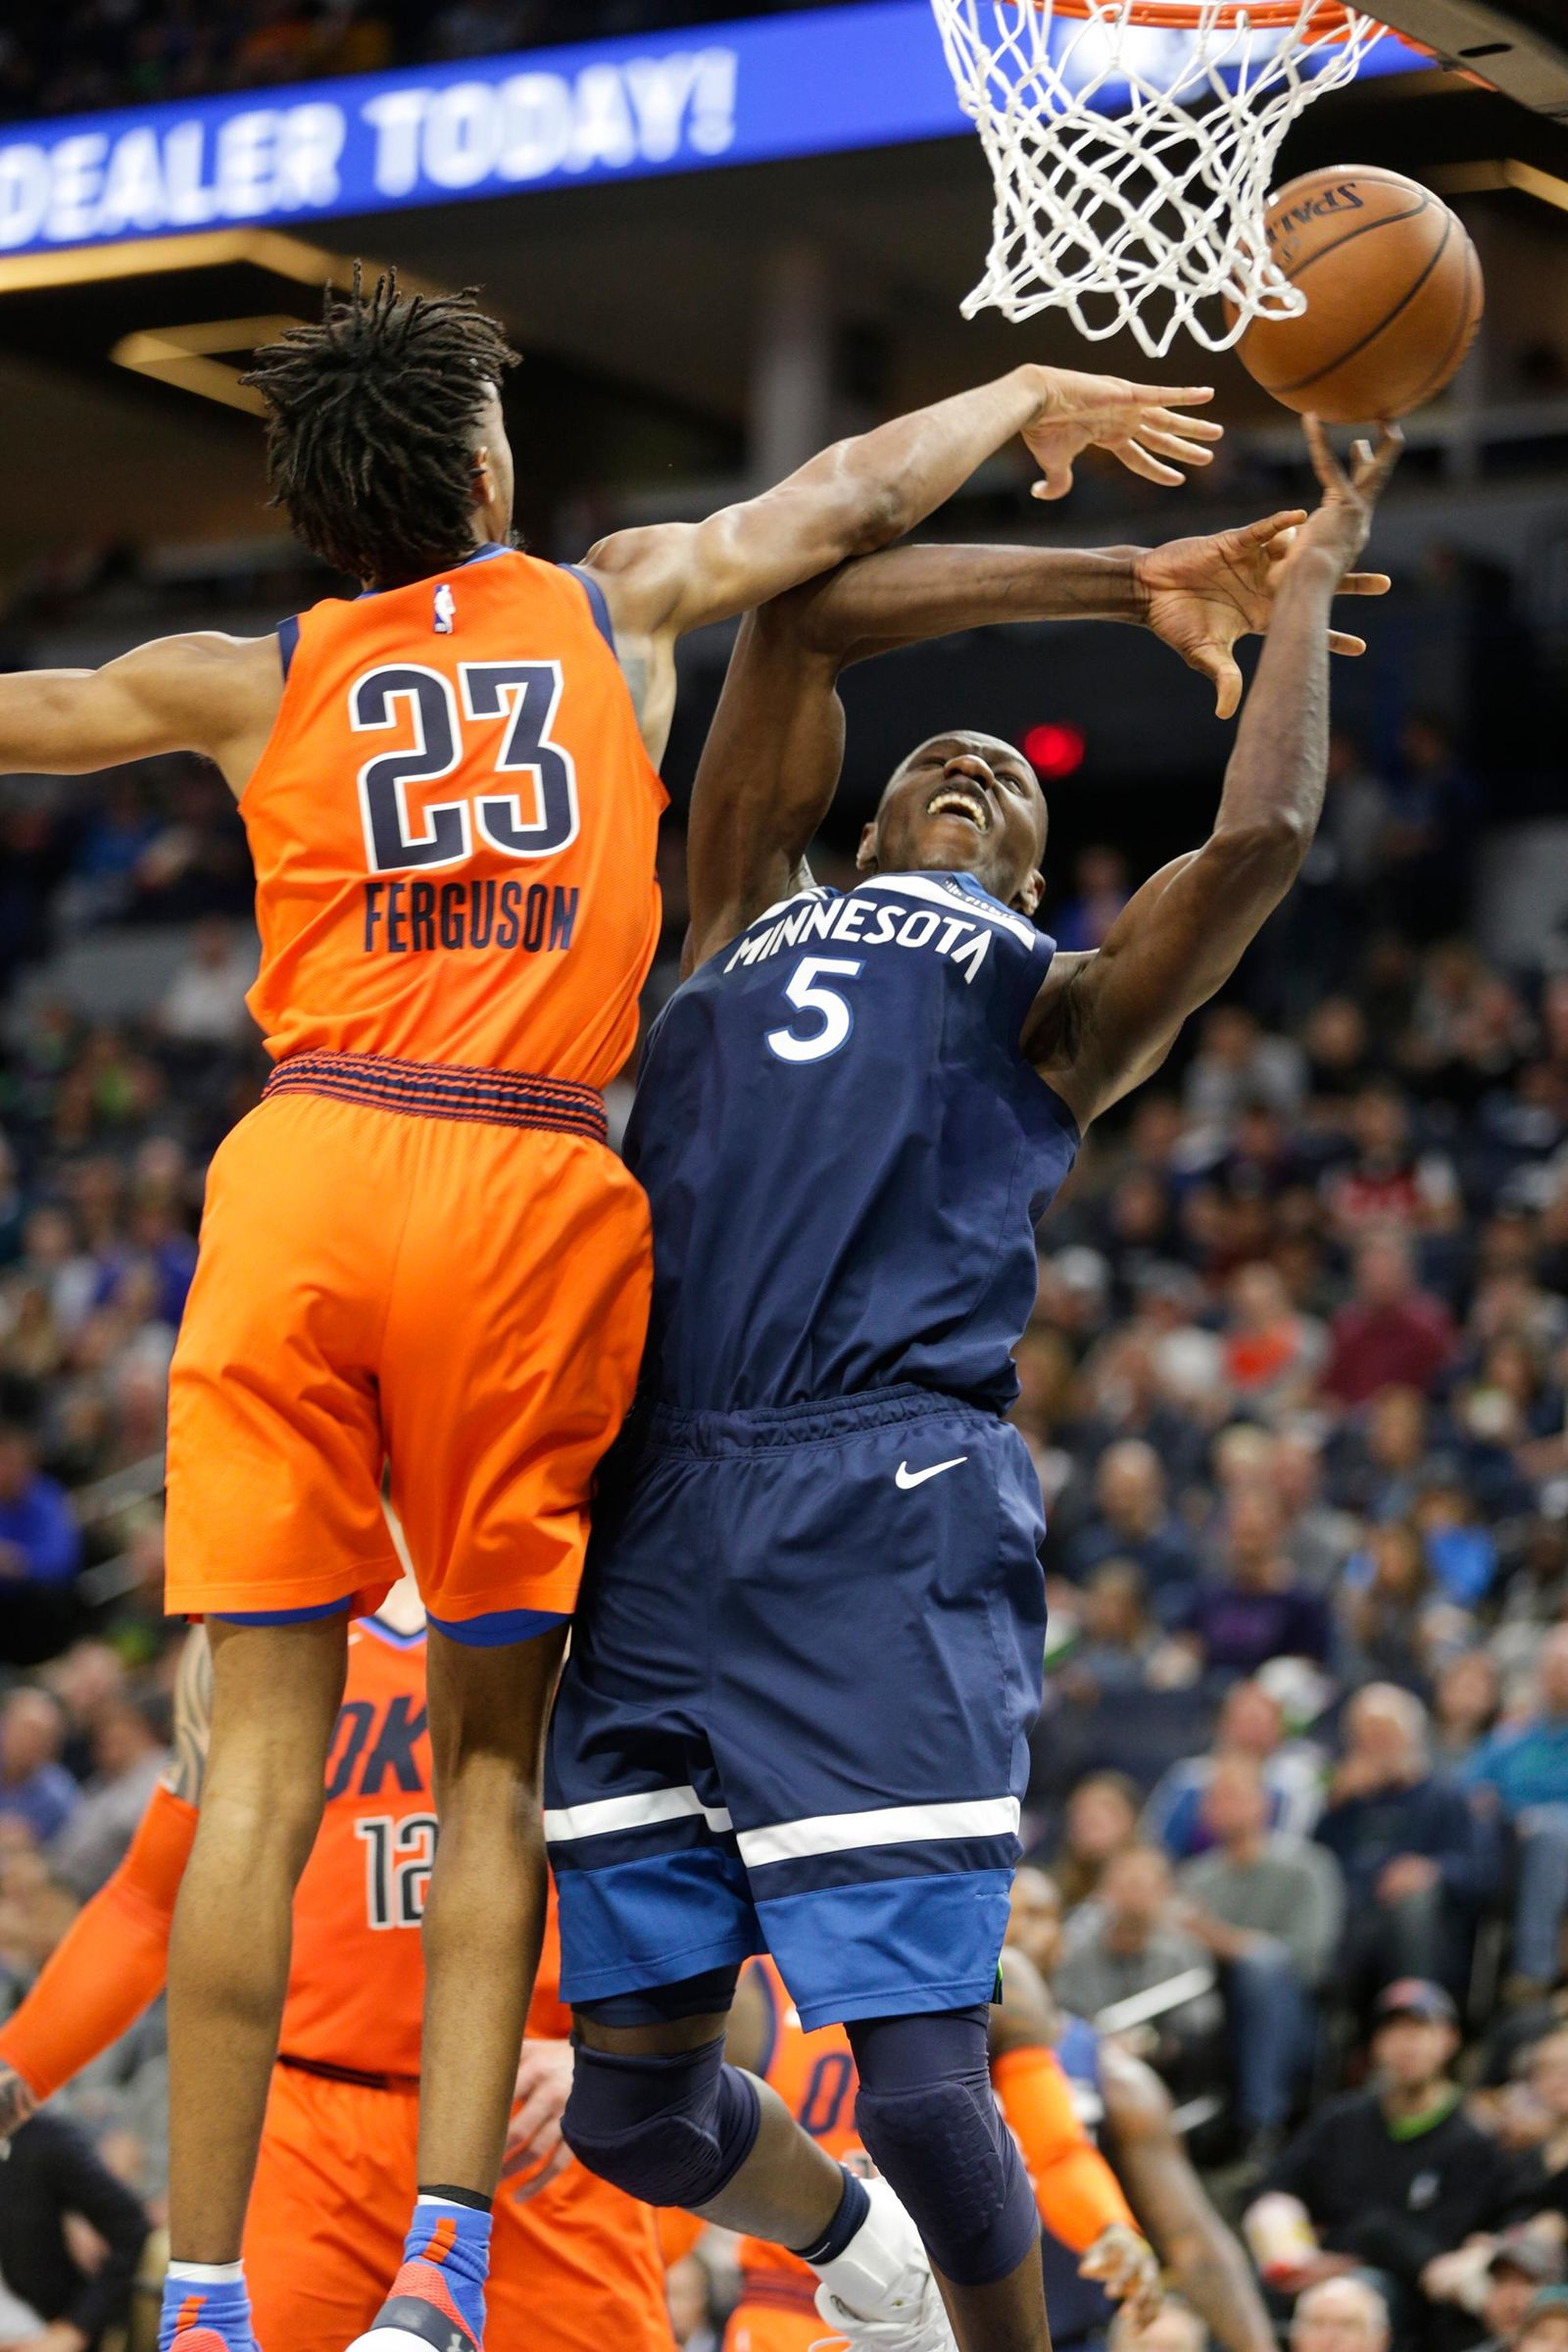 Minnesota Timberwolves center Gorgui Dieng, of Senegal, (5) is fouled by Oklahoma City Thunder guard Terrance Ferguson (23) as he goes up for a shot during the first half of a NBA basketball game Sunday, April 7, 2019, in Minneapolis. (AP Photo/Paul Battaglia)